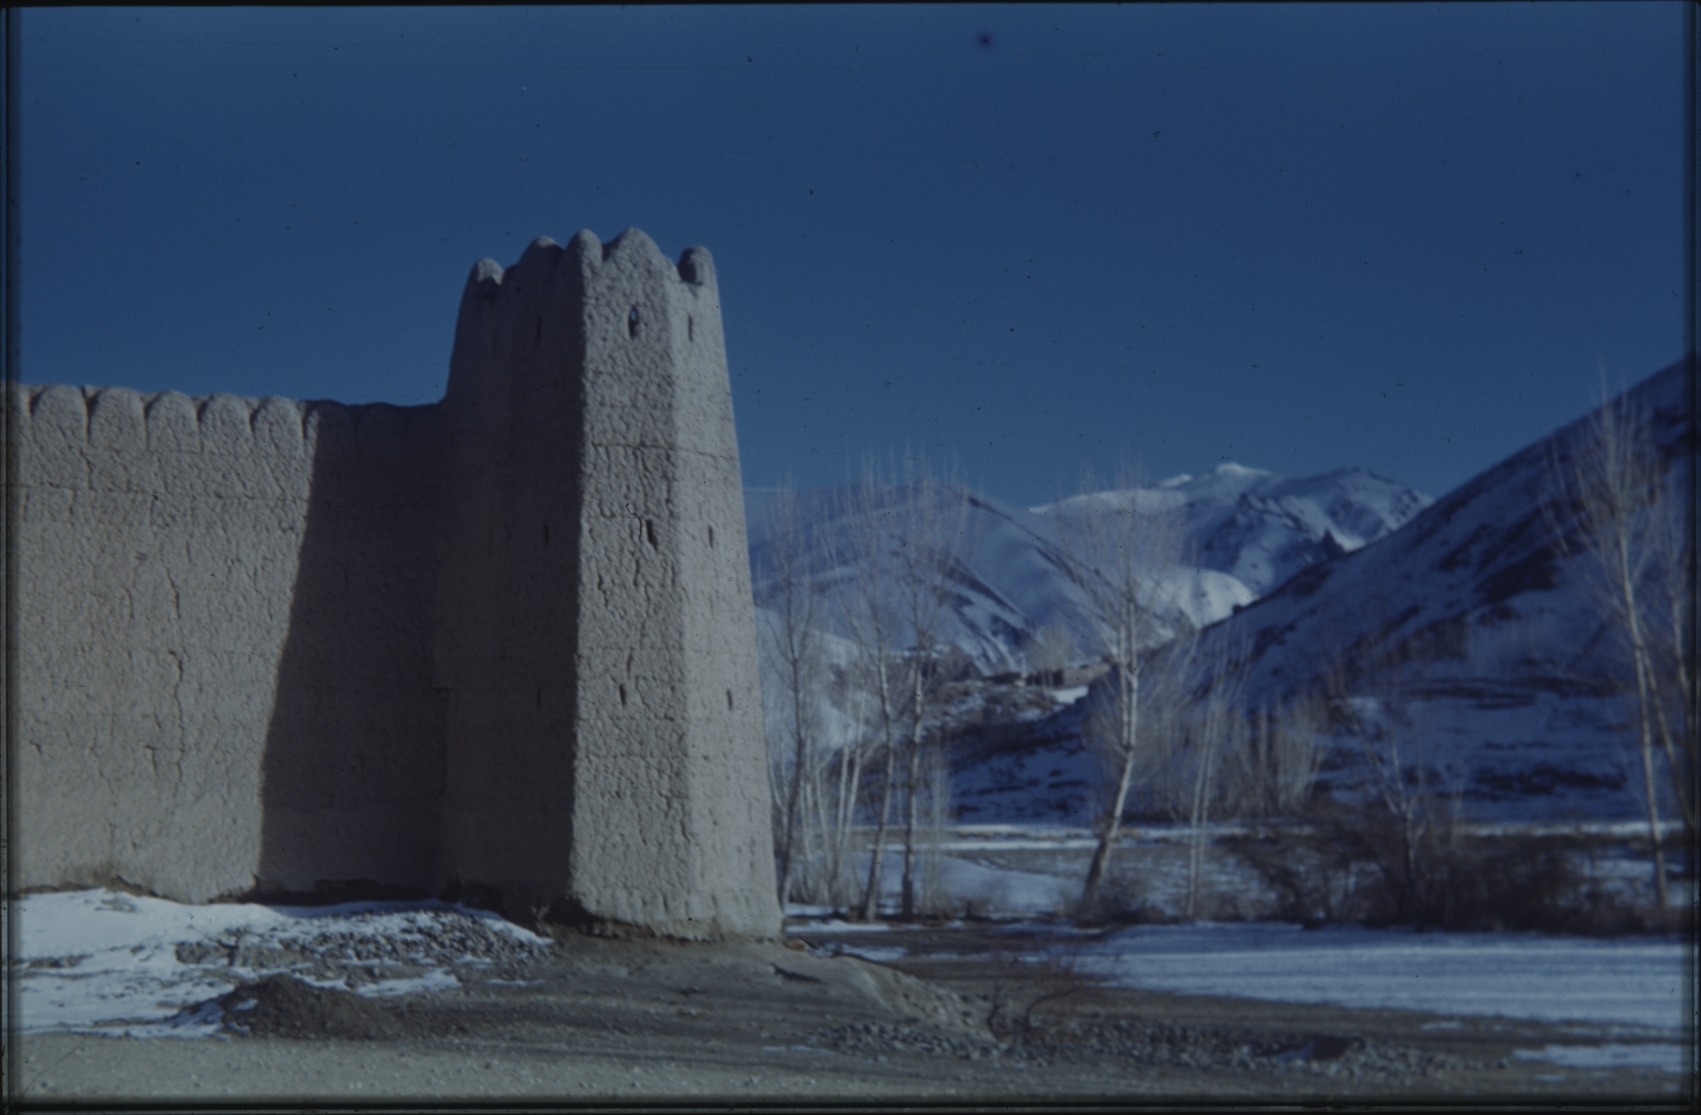 Many villages were surrounded by tall walls. Here the corner of a qal'a, a wall to protect the villagers against foreigners and wolves. The Henning Haslund-Christensen Memorial Expedition, 1953-'55. Photo: the Moesgaard Museum archives